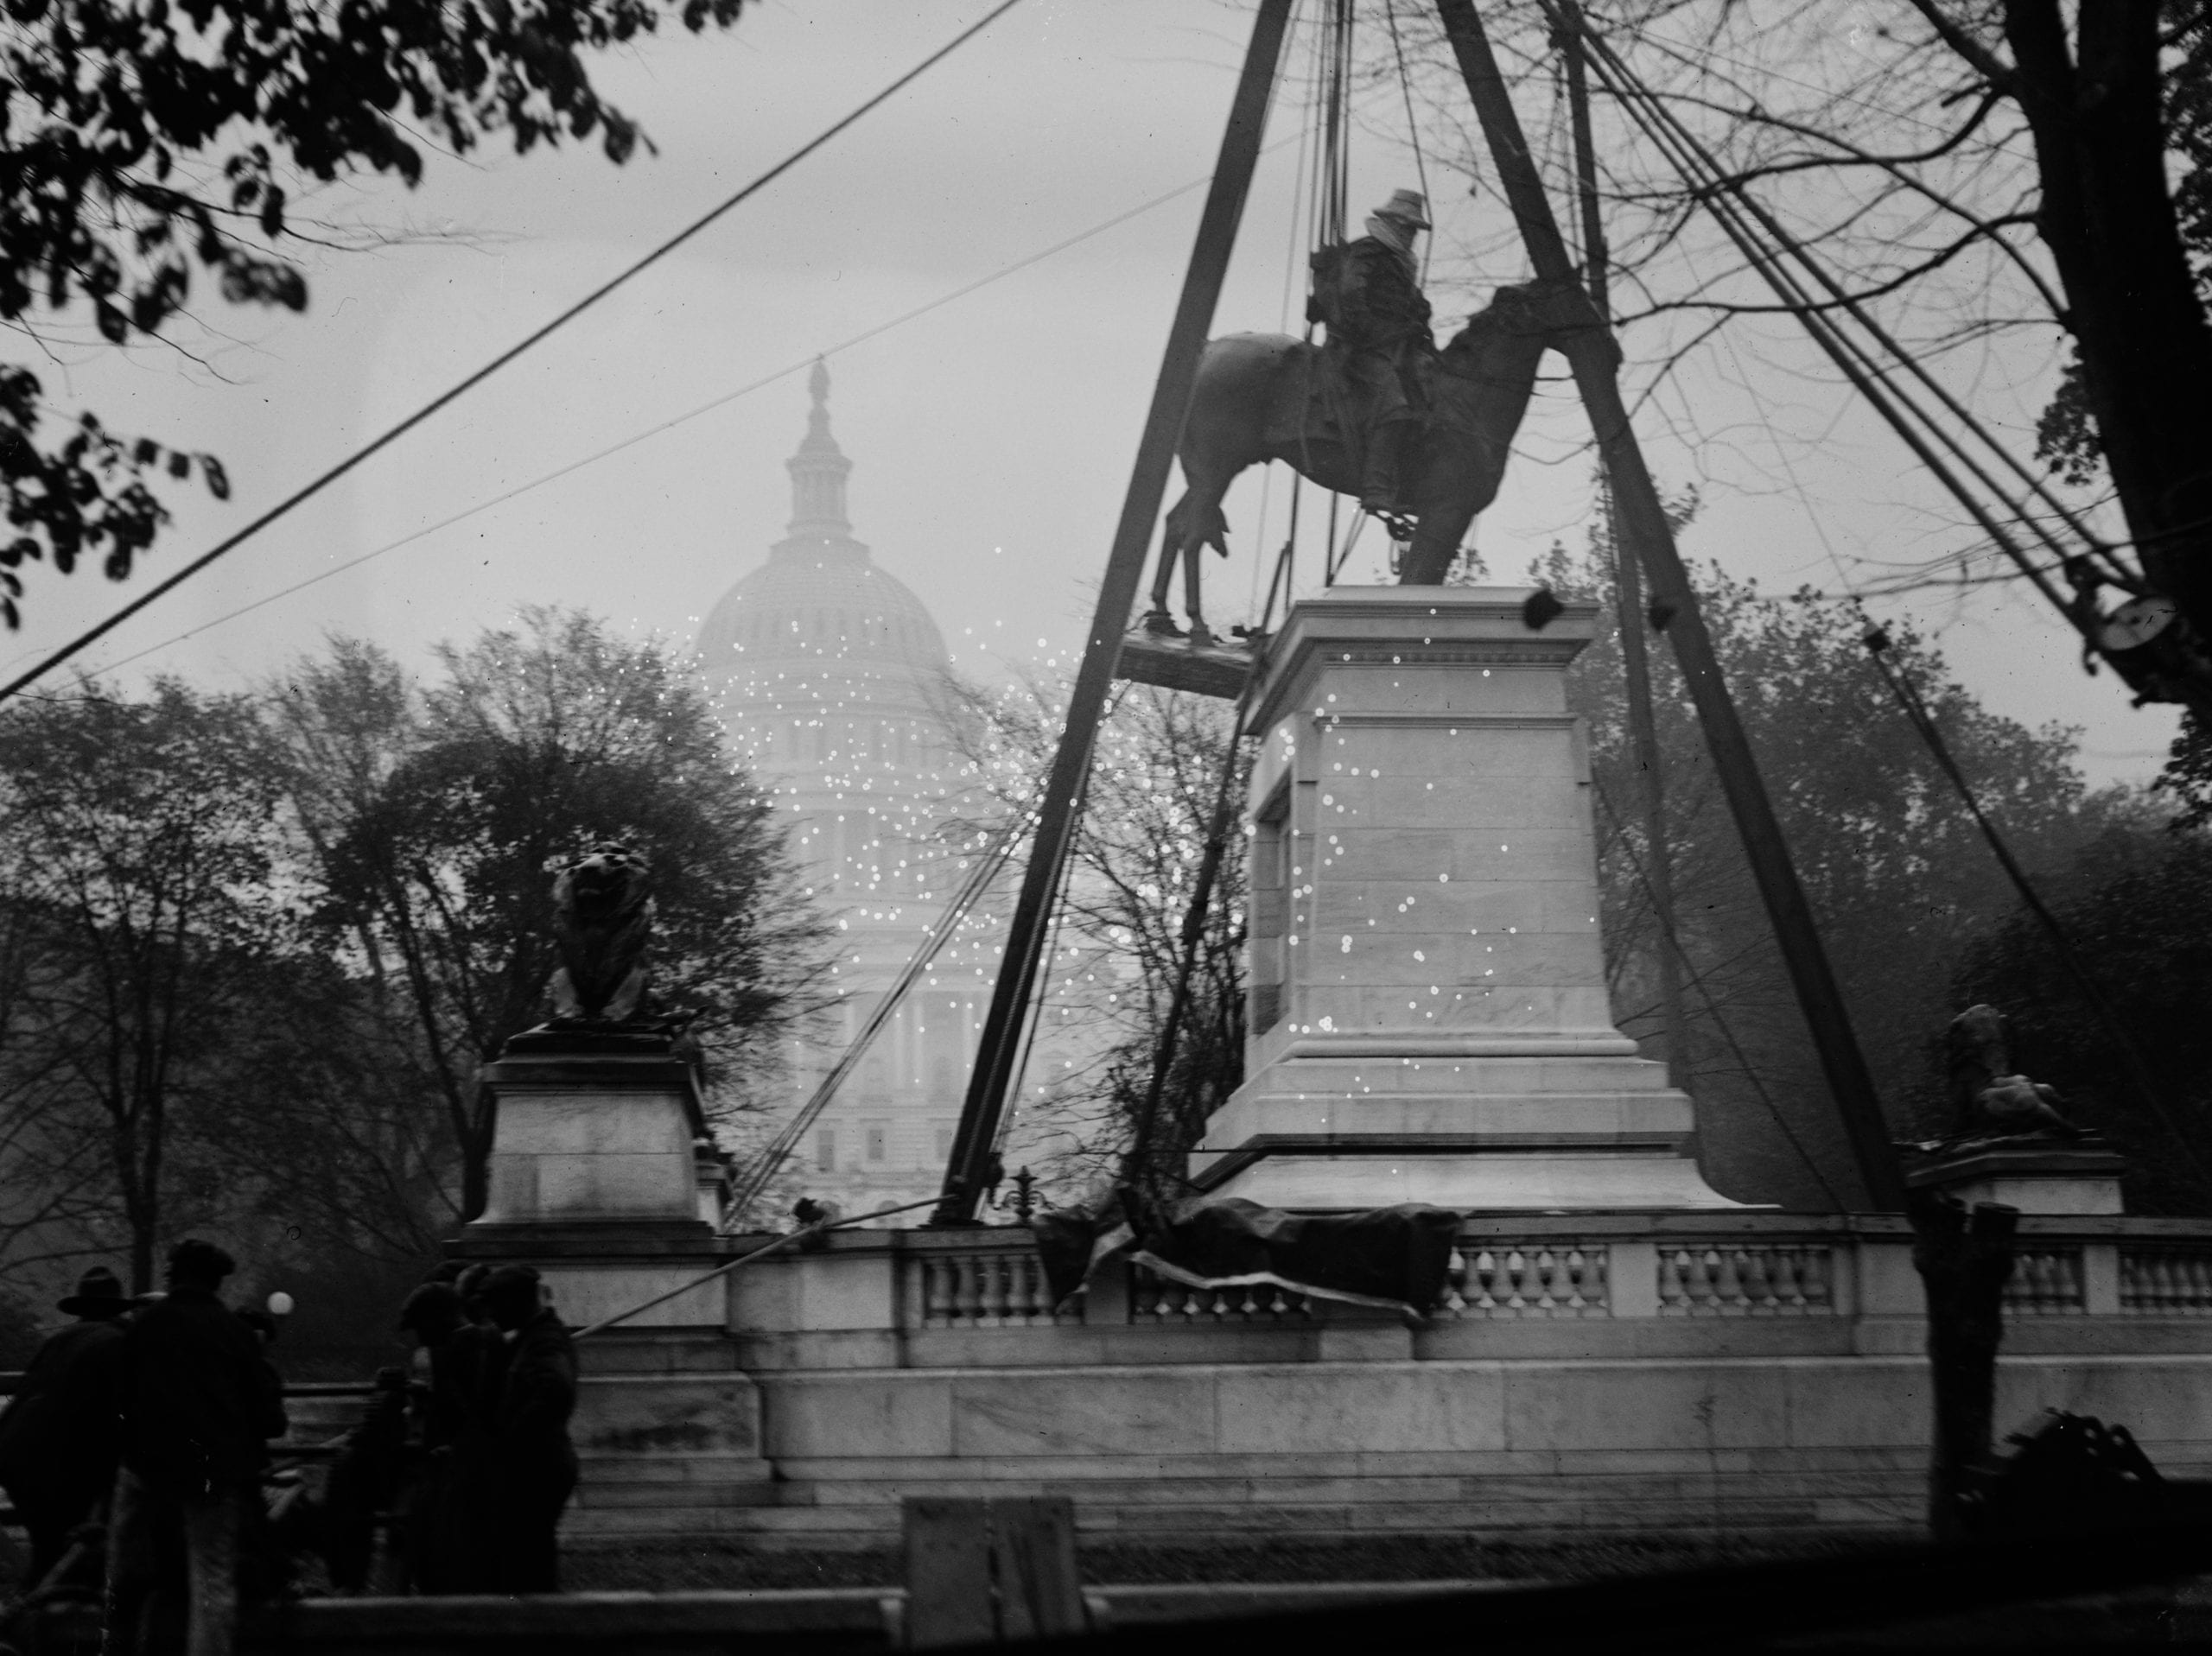 Grant's statue being put in place 1920